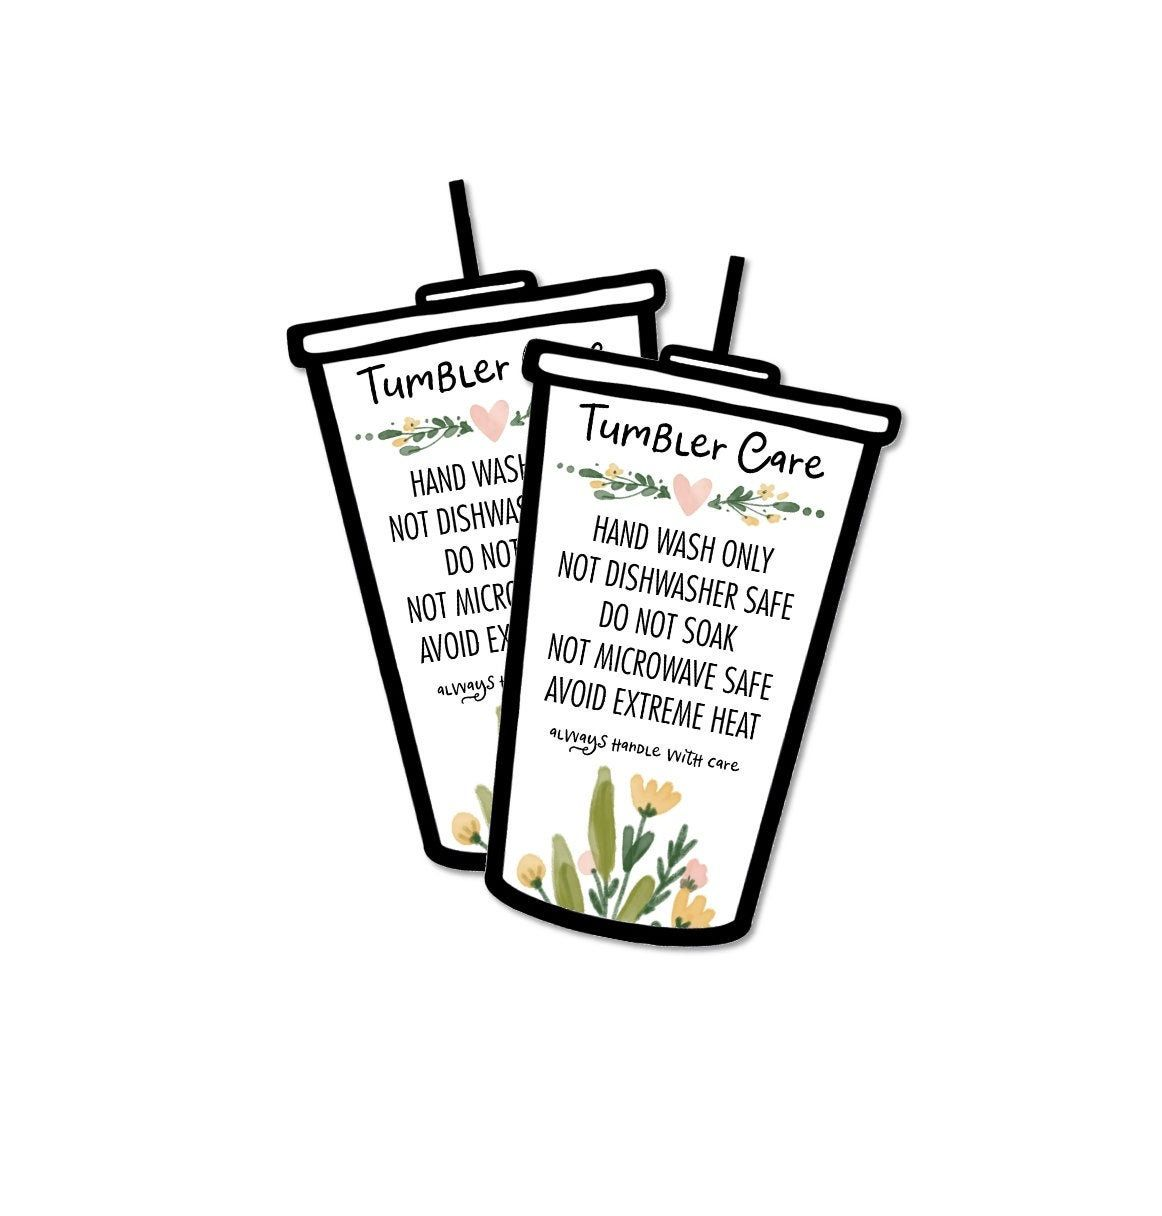 Iced Tumbler Care Card Printable Ready To Print Digital File Etsy Printing Center Card Sizes Tumbler